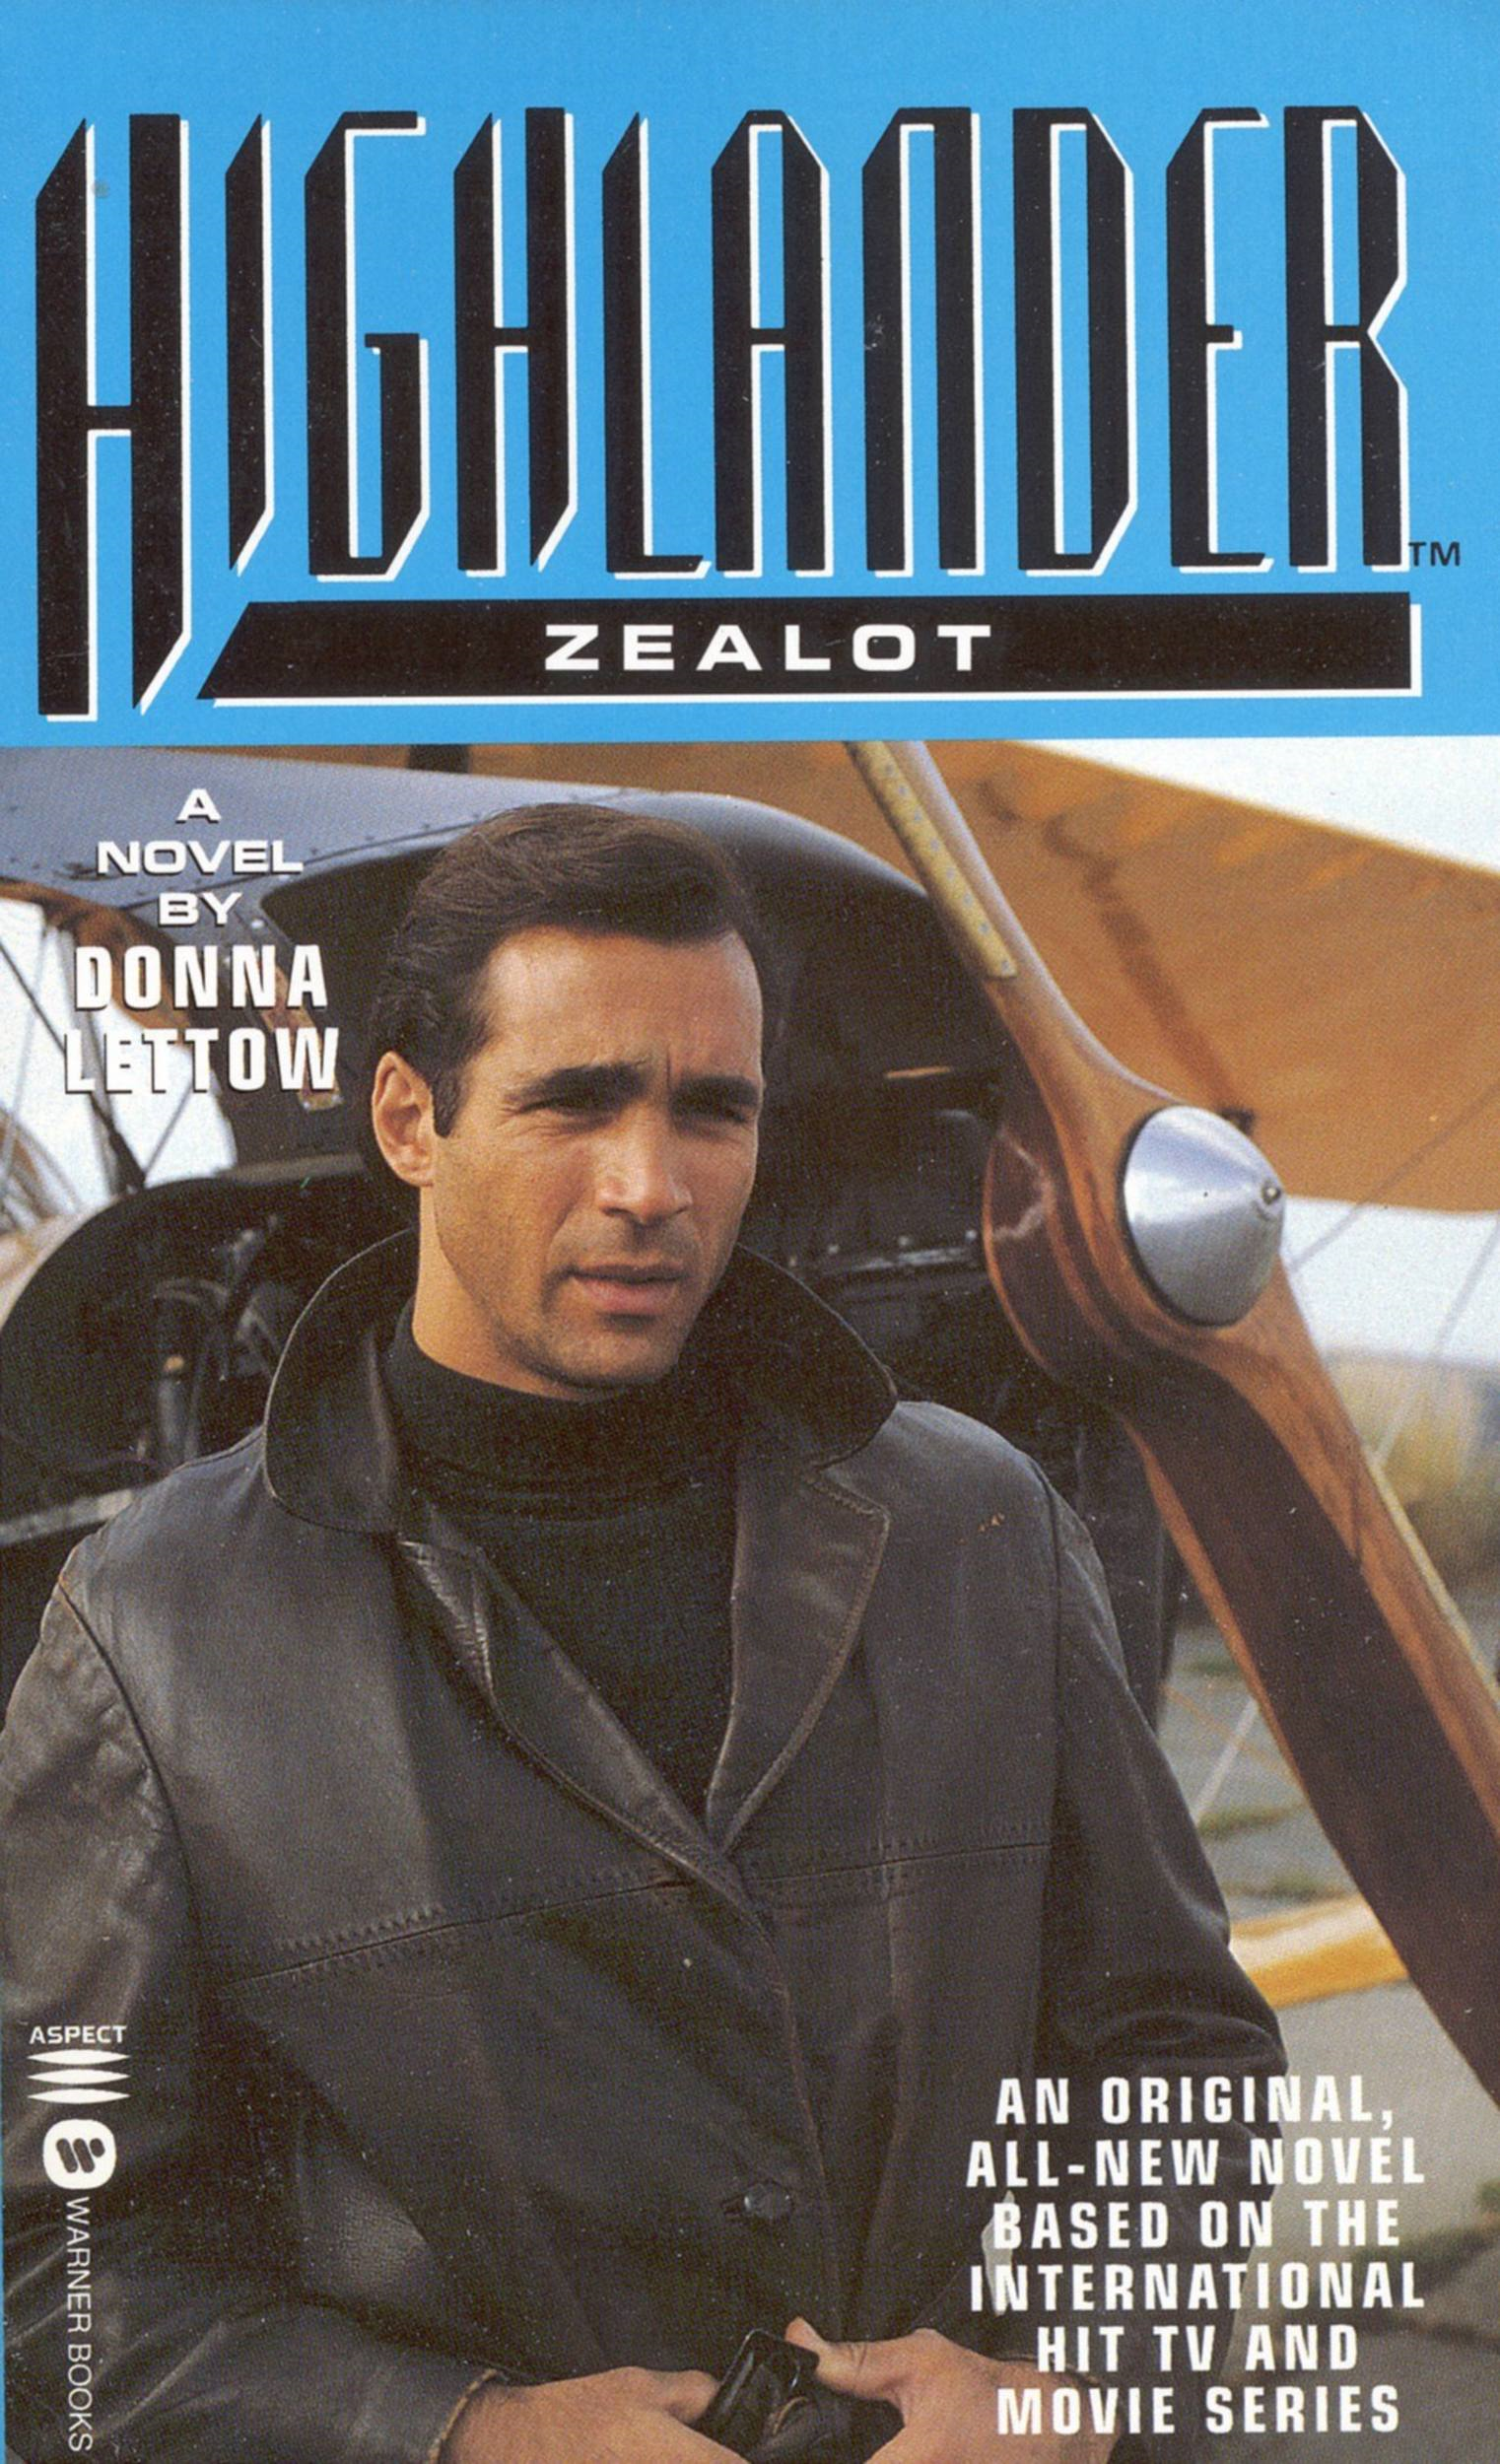 Highlander(TM): Zealot By: Donna Lettow